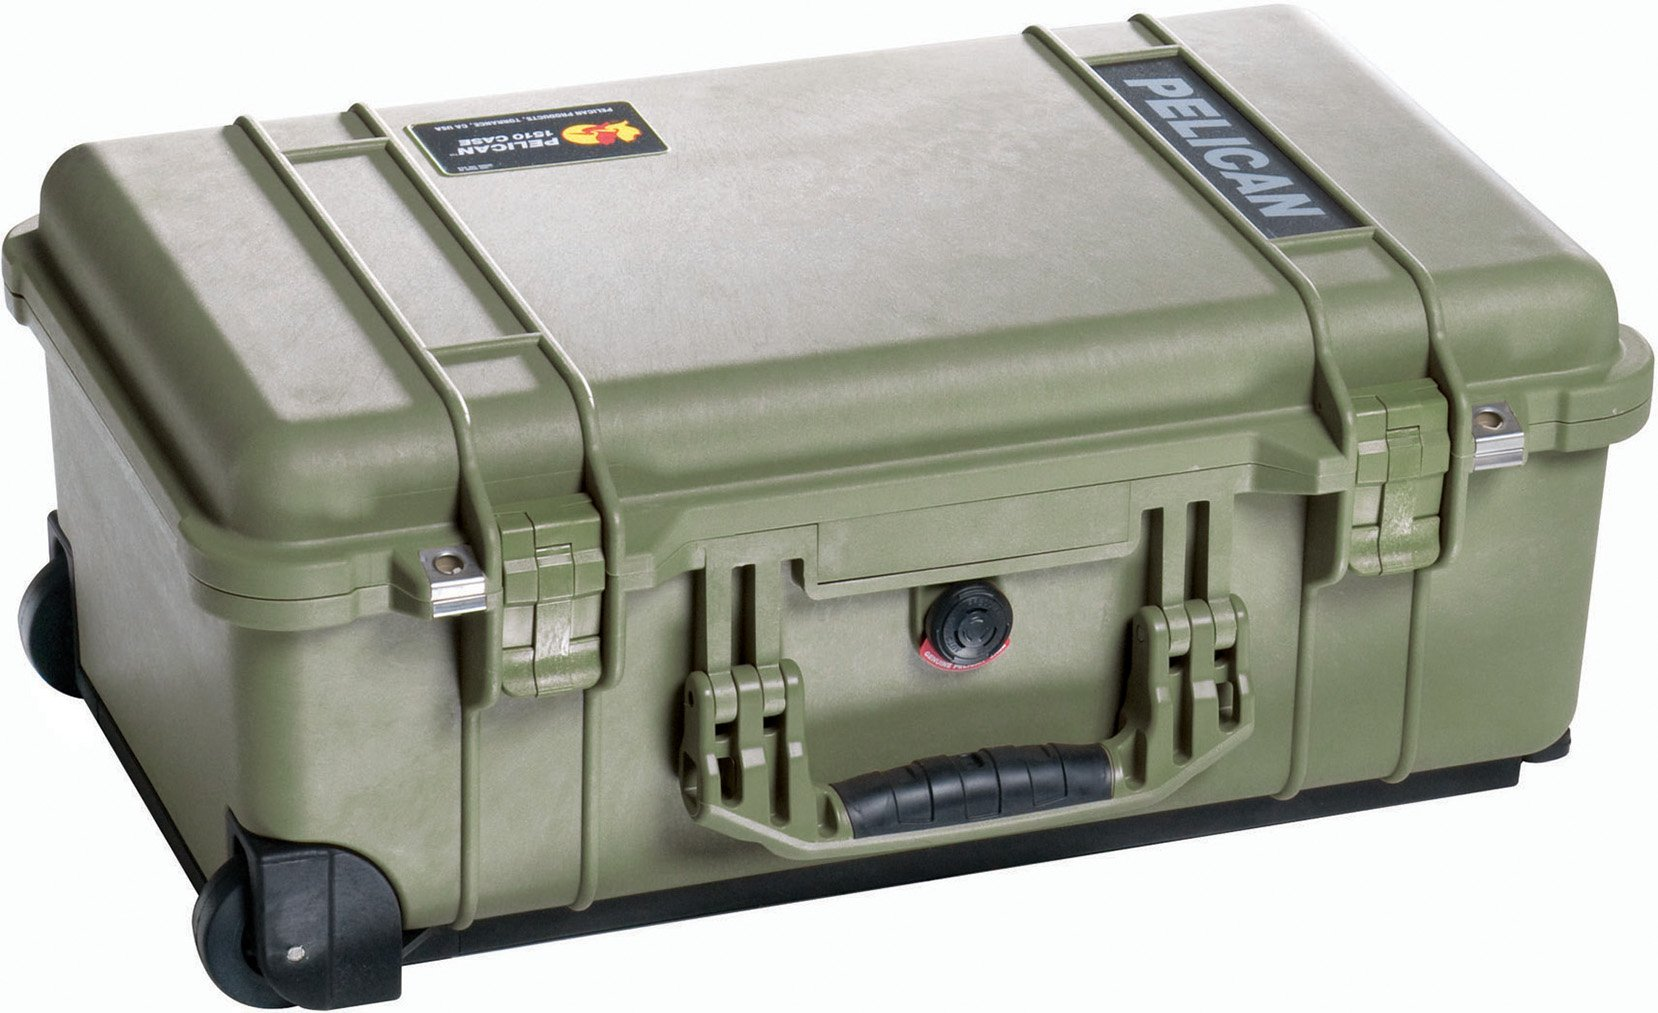 Pelican 1510 Case With Padded Dividers (OD Green) by Pelican